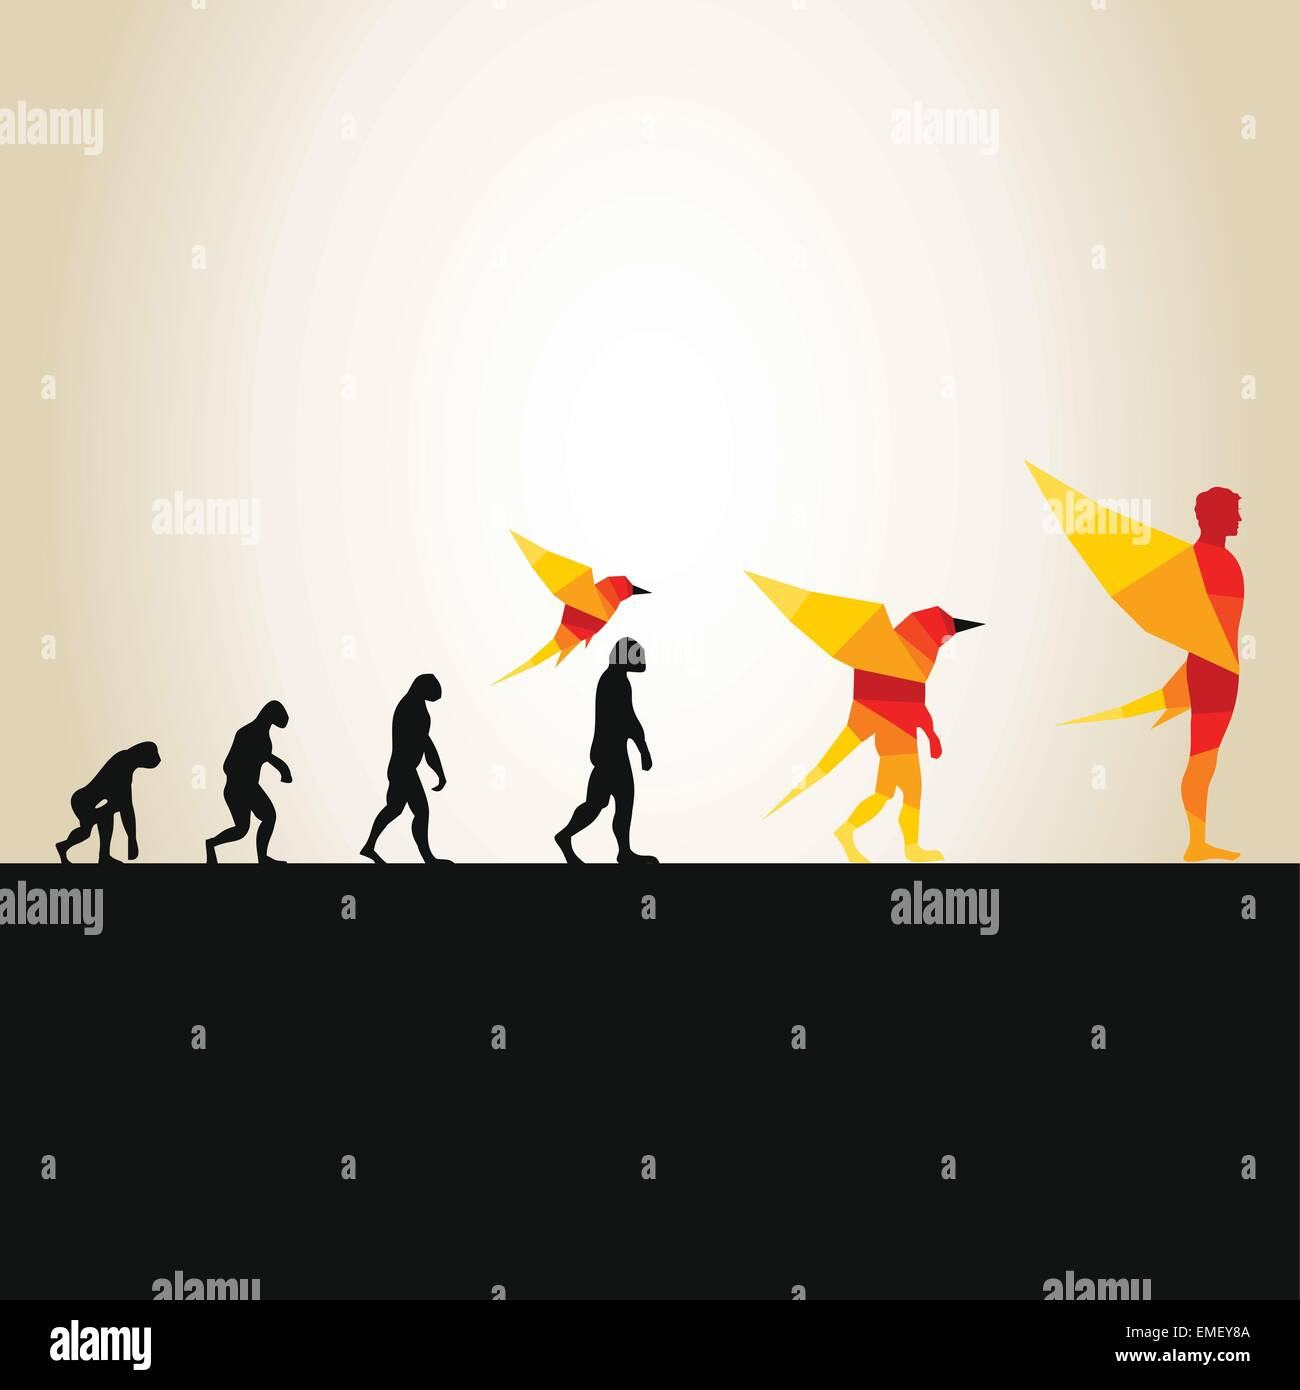 Evolution in a bird2 - Stock Image